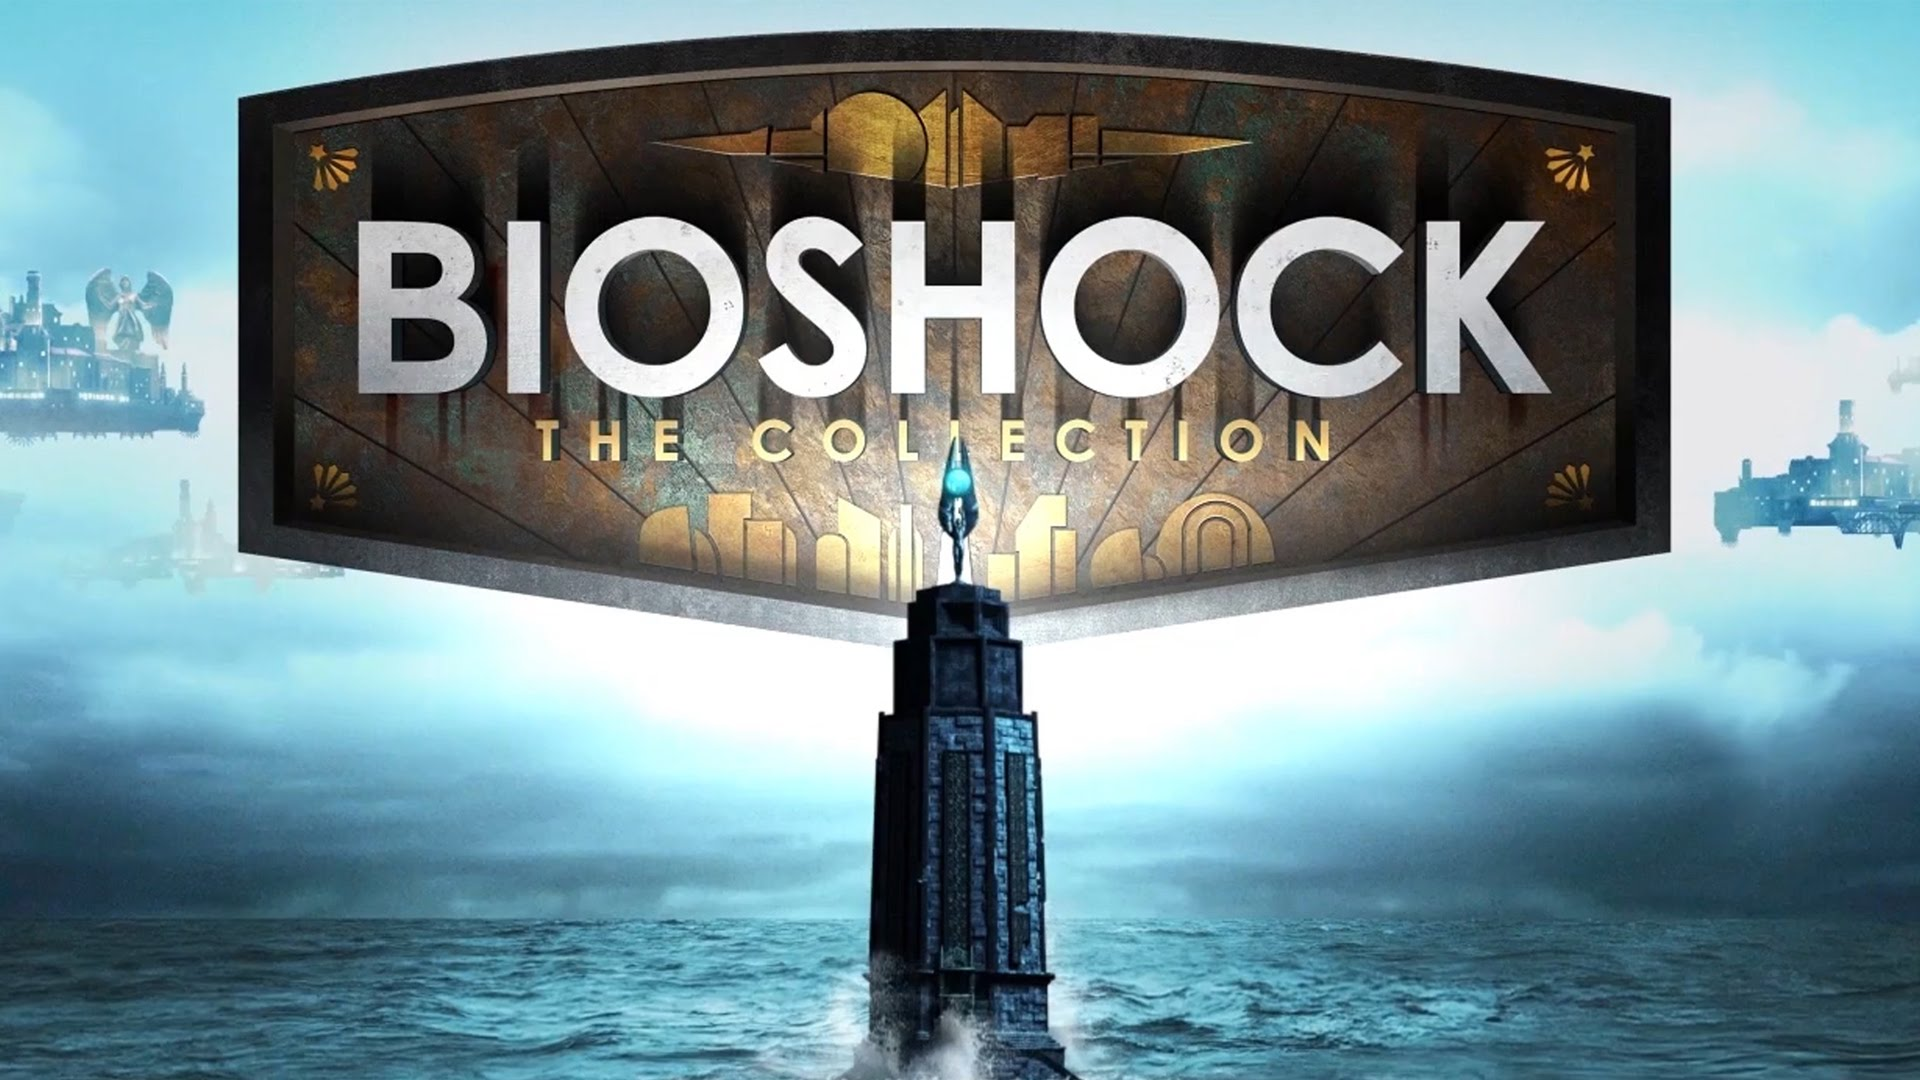 BioShock: The Collection HQ wallpapers